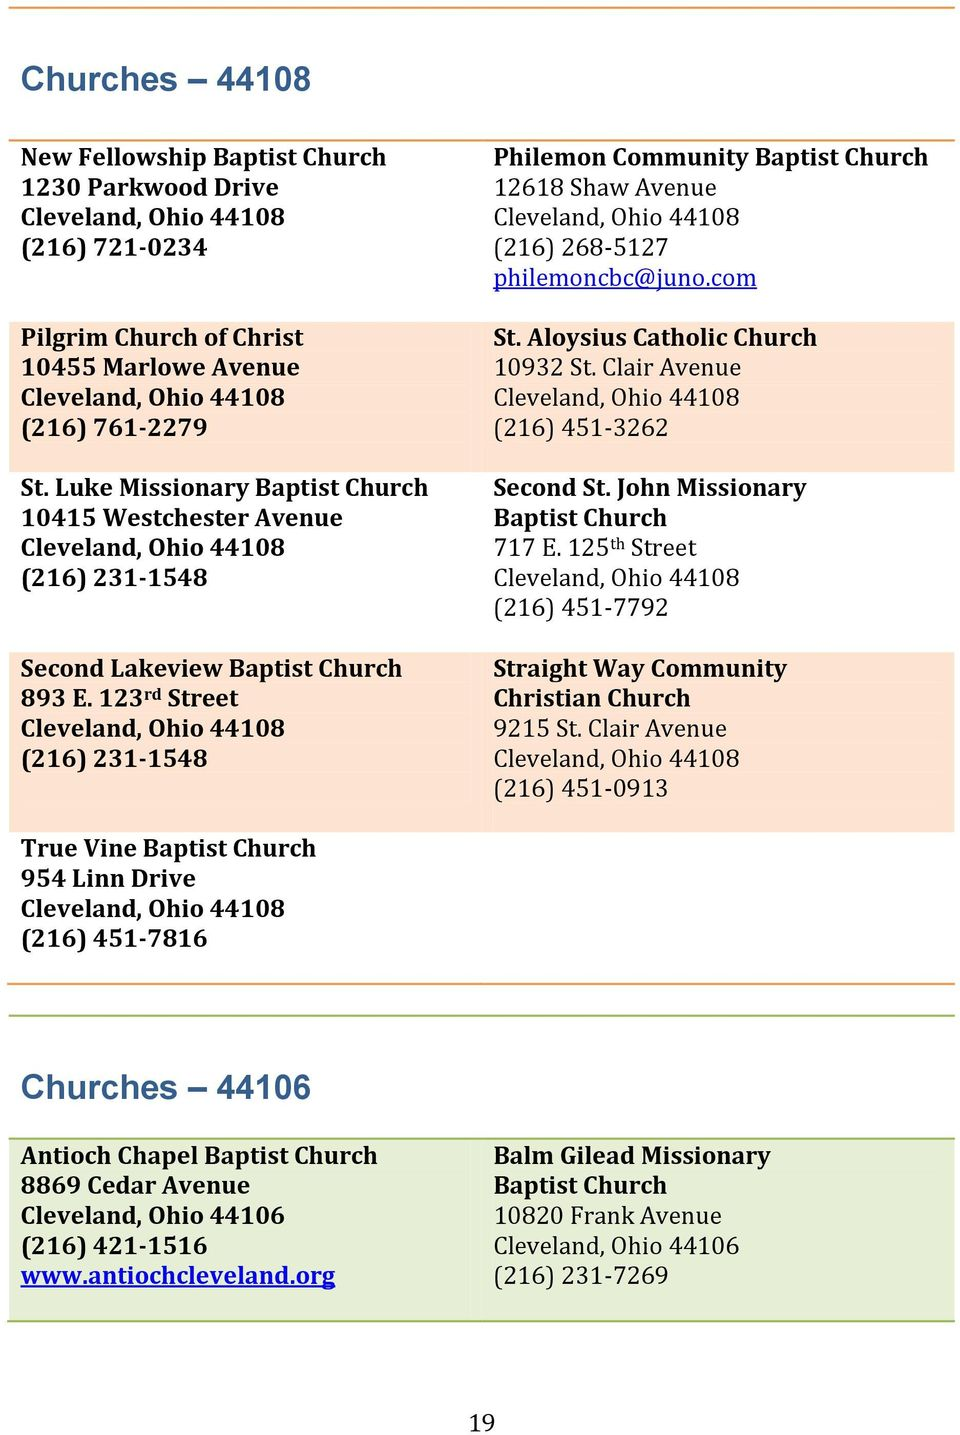 123 rd Street (216) 231-1548 Philemon Community Baptist Church 12618 Shaw Avenue (216) 268-5127 philemoncbc@juno.com St. Aloysius Catholic Church 10932 St. Clair Avenue (216) 451-3262 Second St.